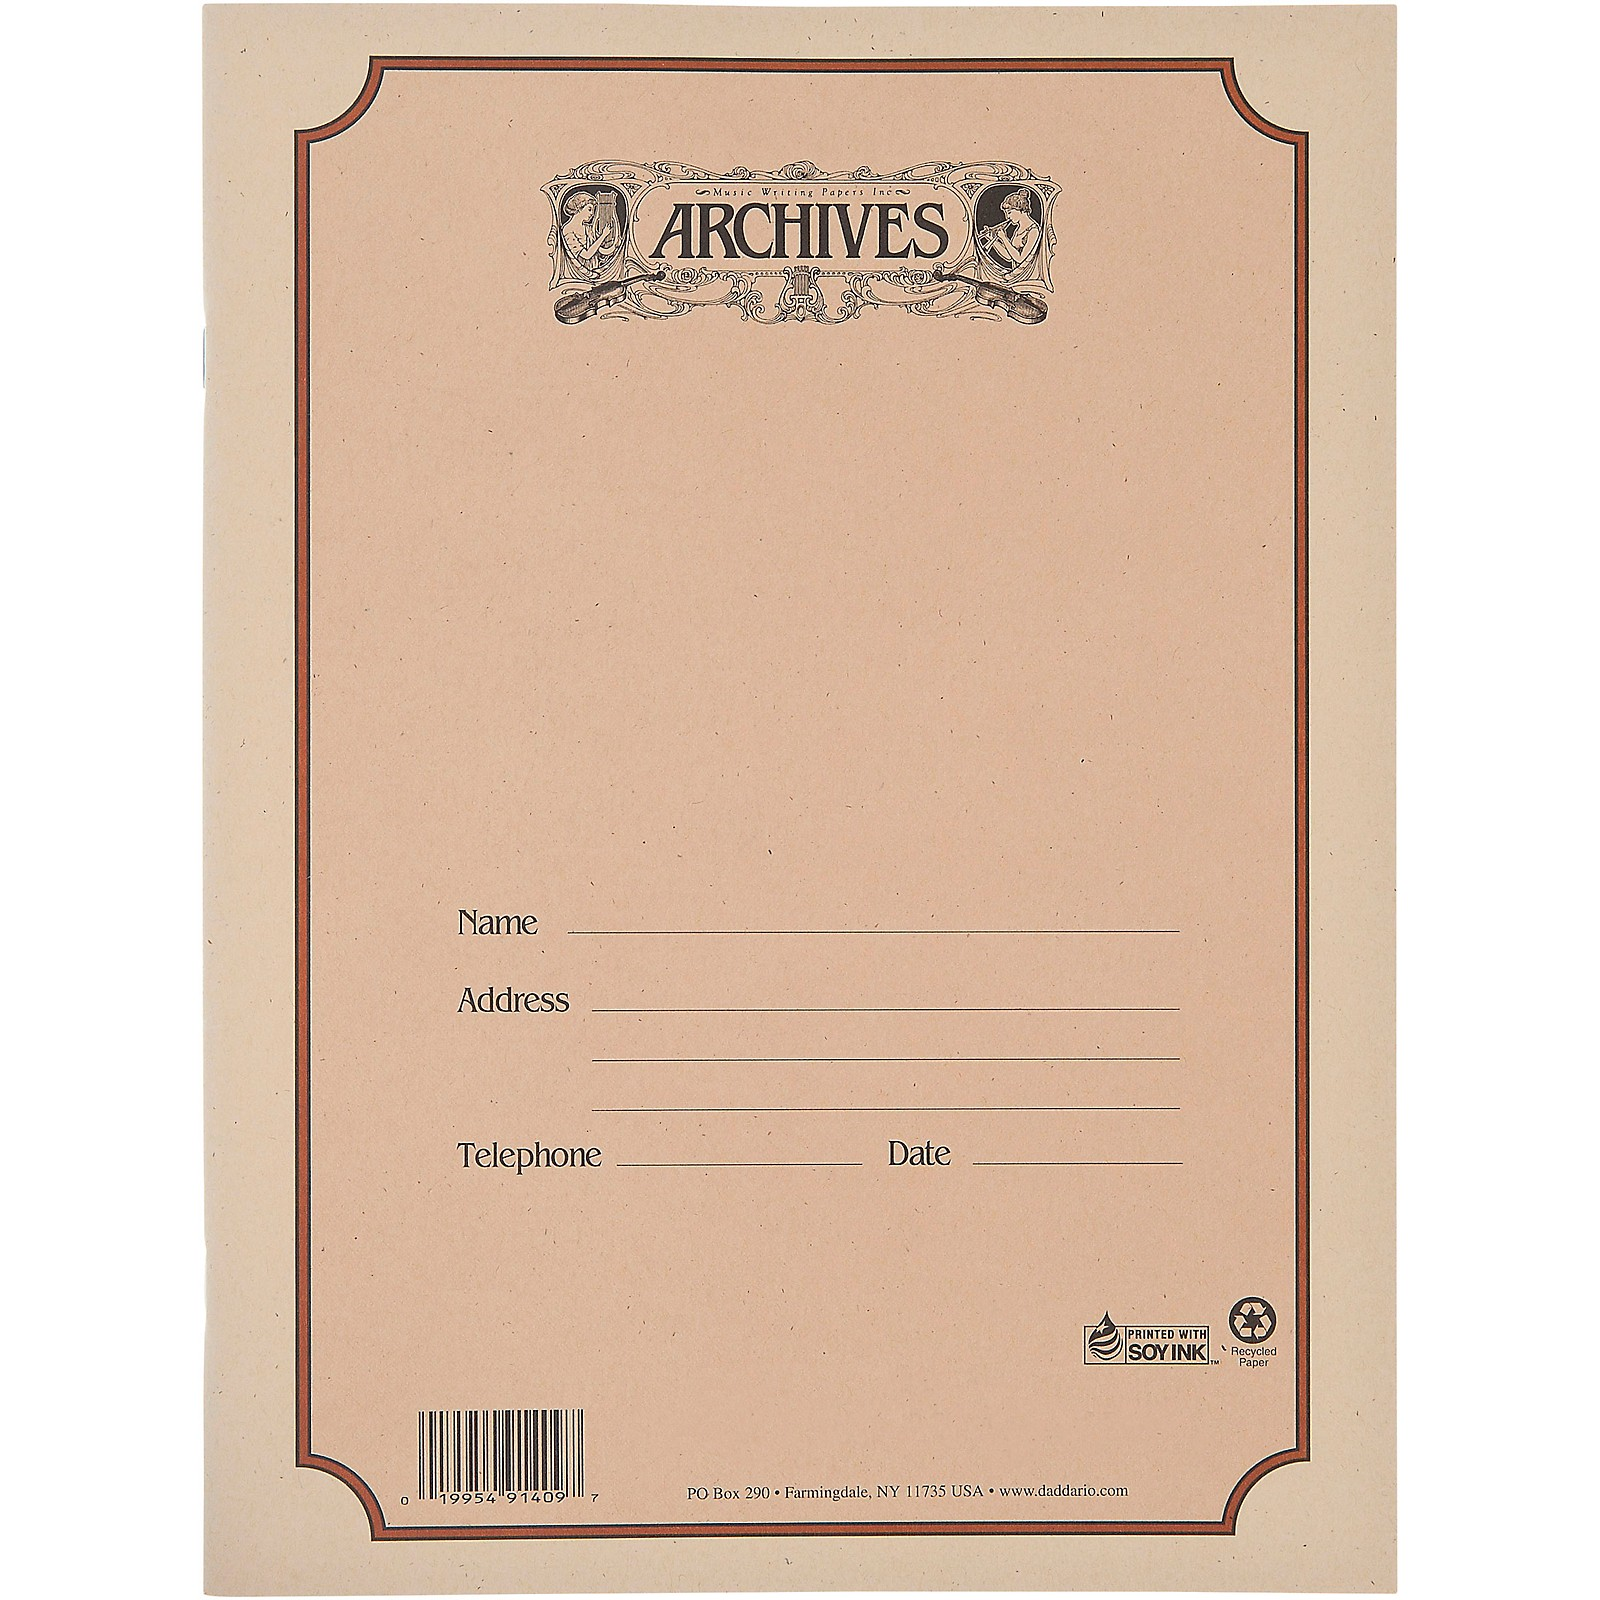 Archives Spiral Bound Manuscript Paper 12 Staves, 96 Pages